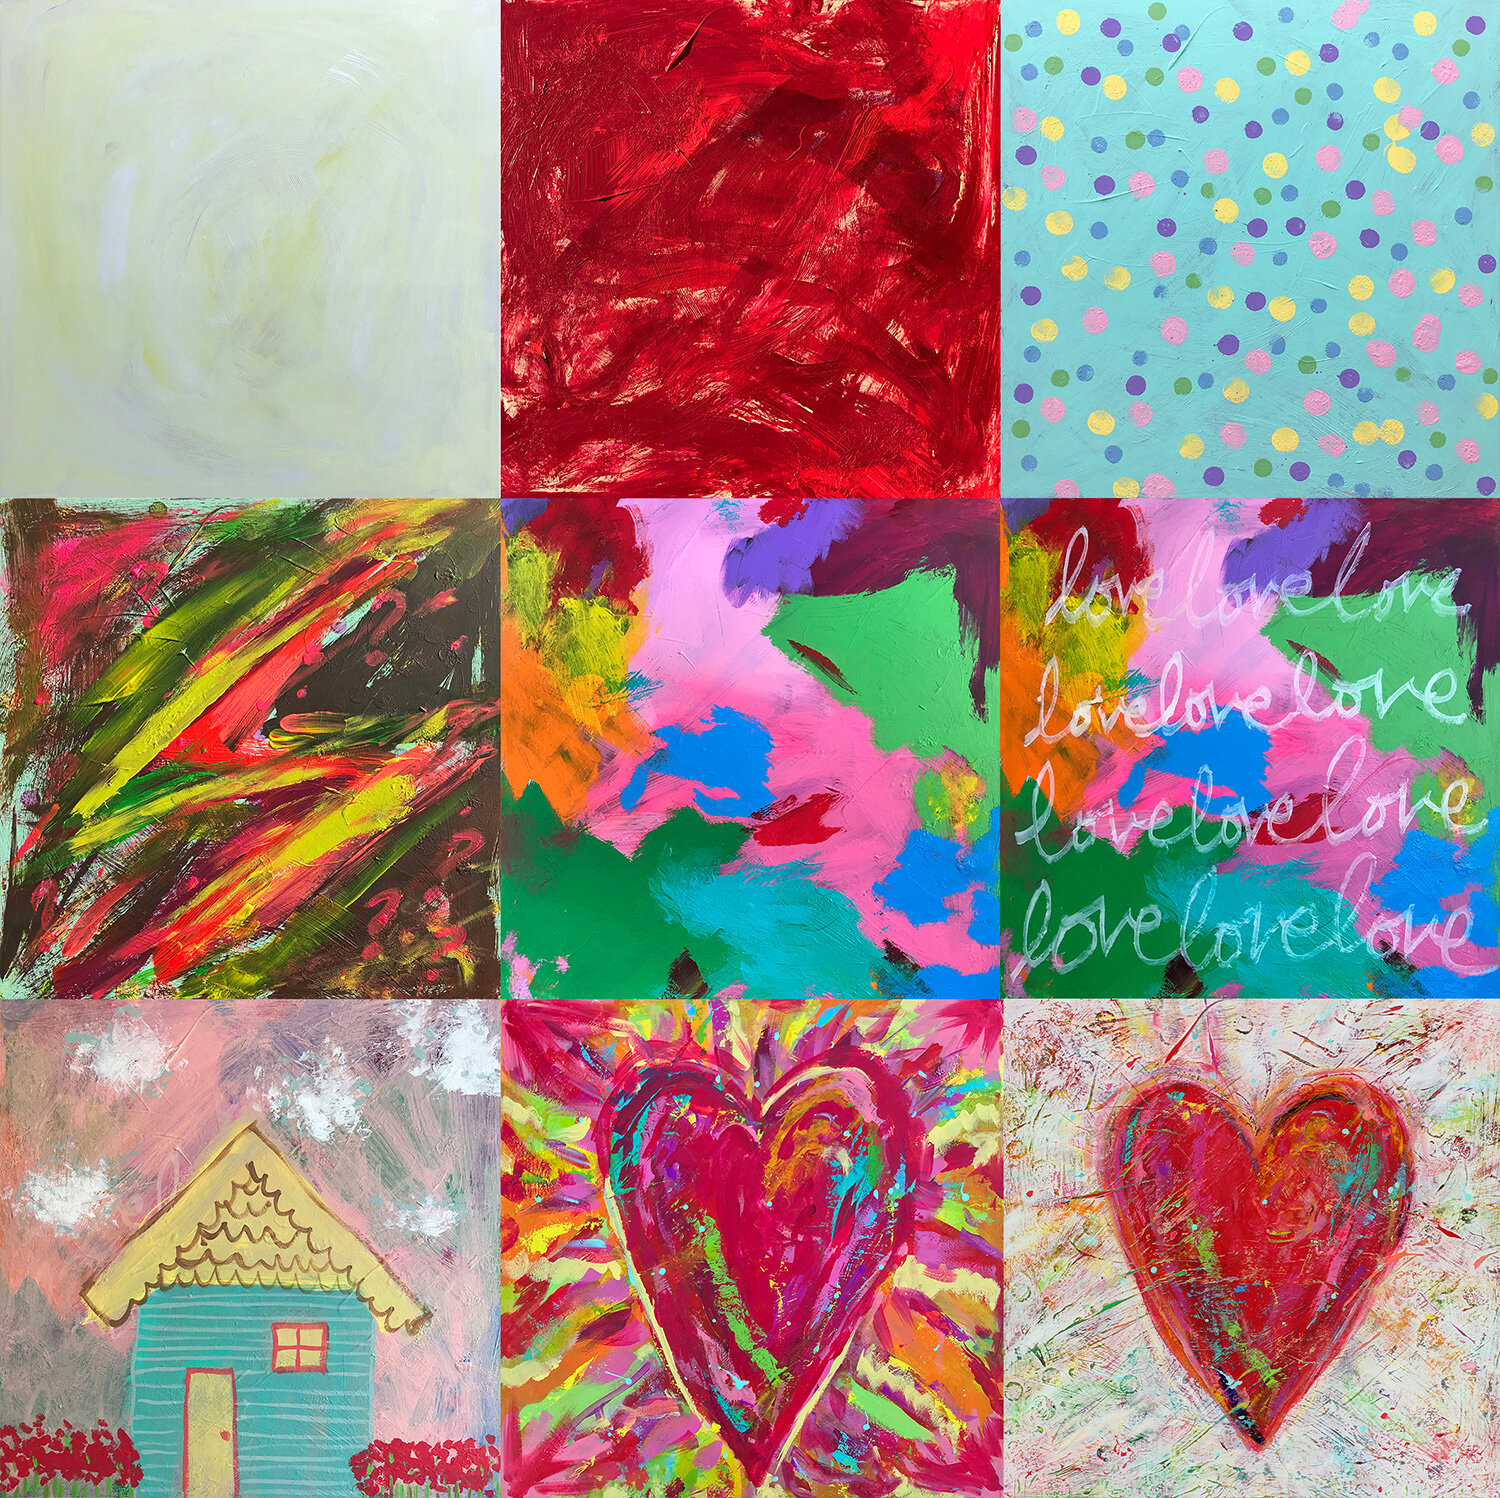 Tonya Vistaunet. There Is No End to Love (2019), pictured from its first stage (upper left) to final version (lower right).